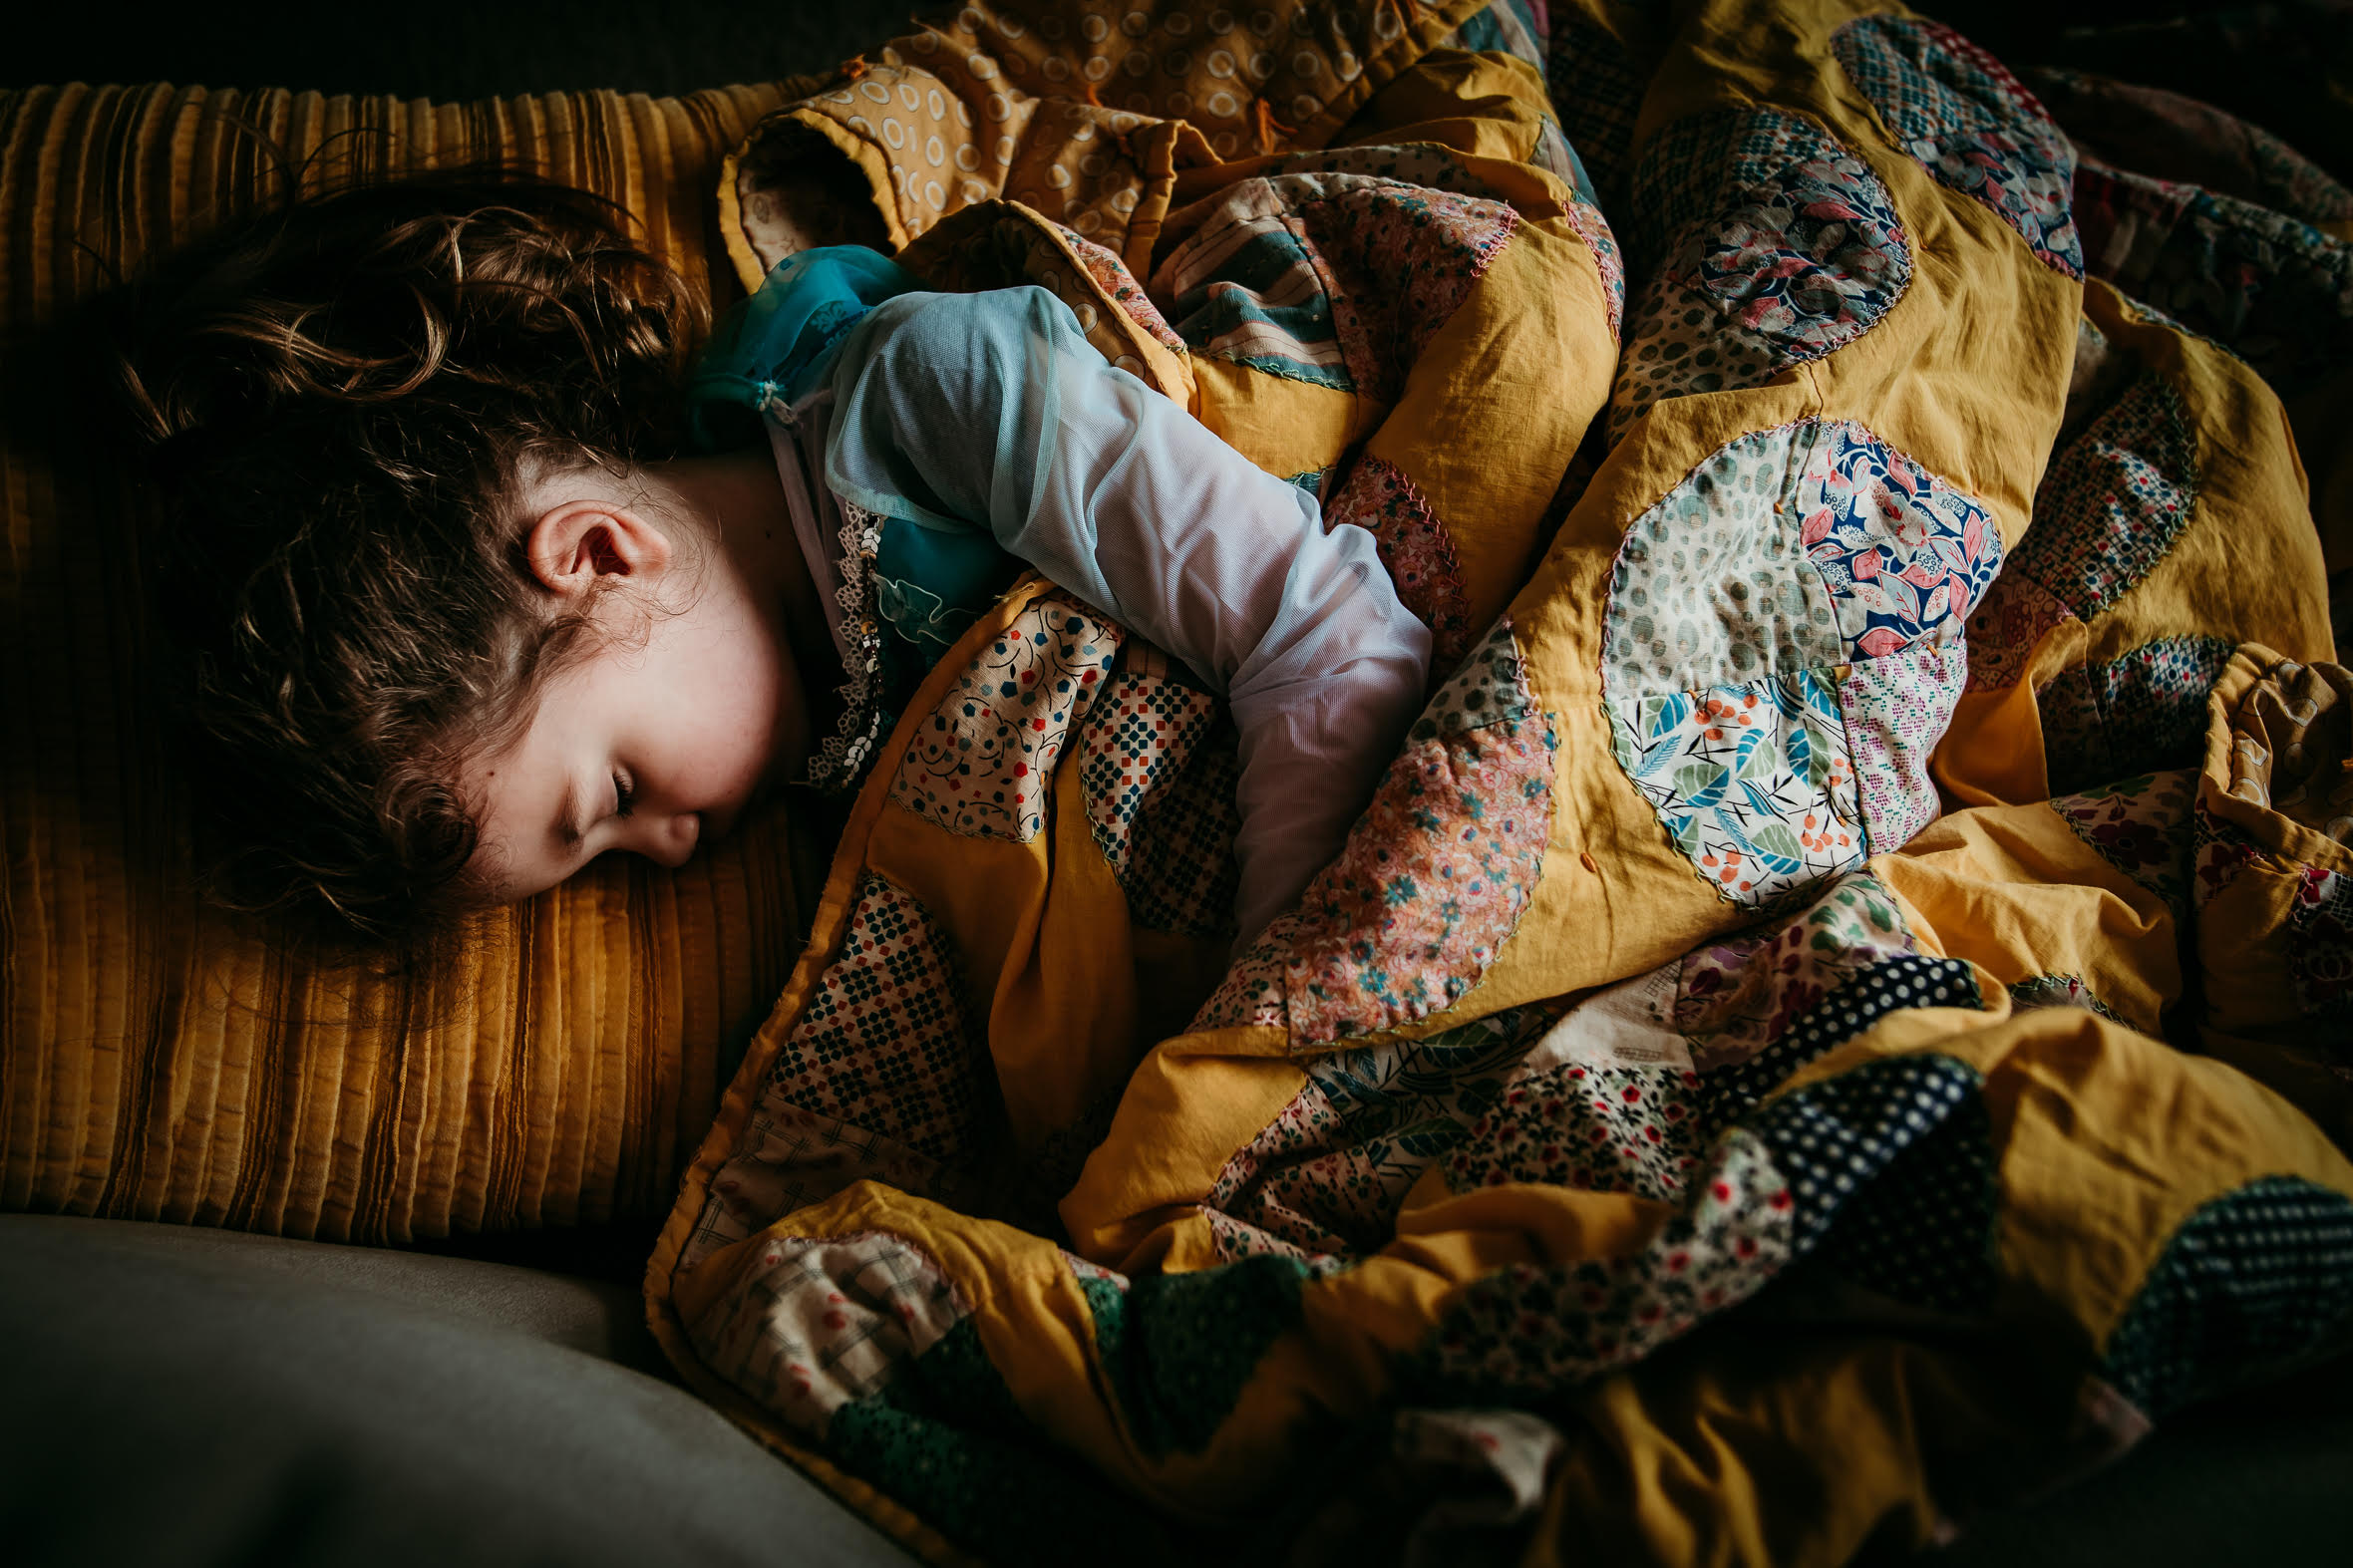 indoor natural light pictures, child sleeping, vintage quilts, lifestyle pictures